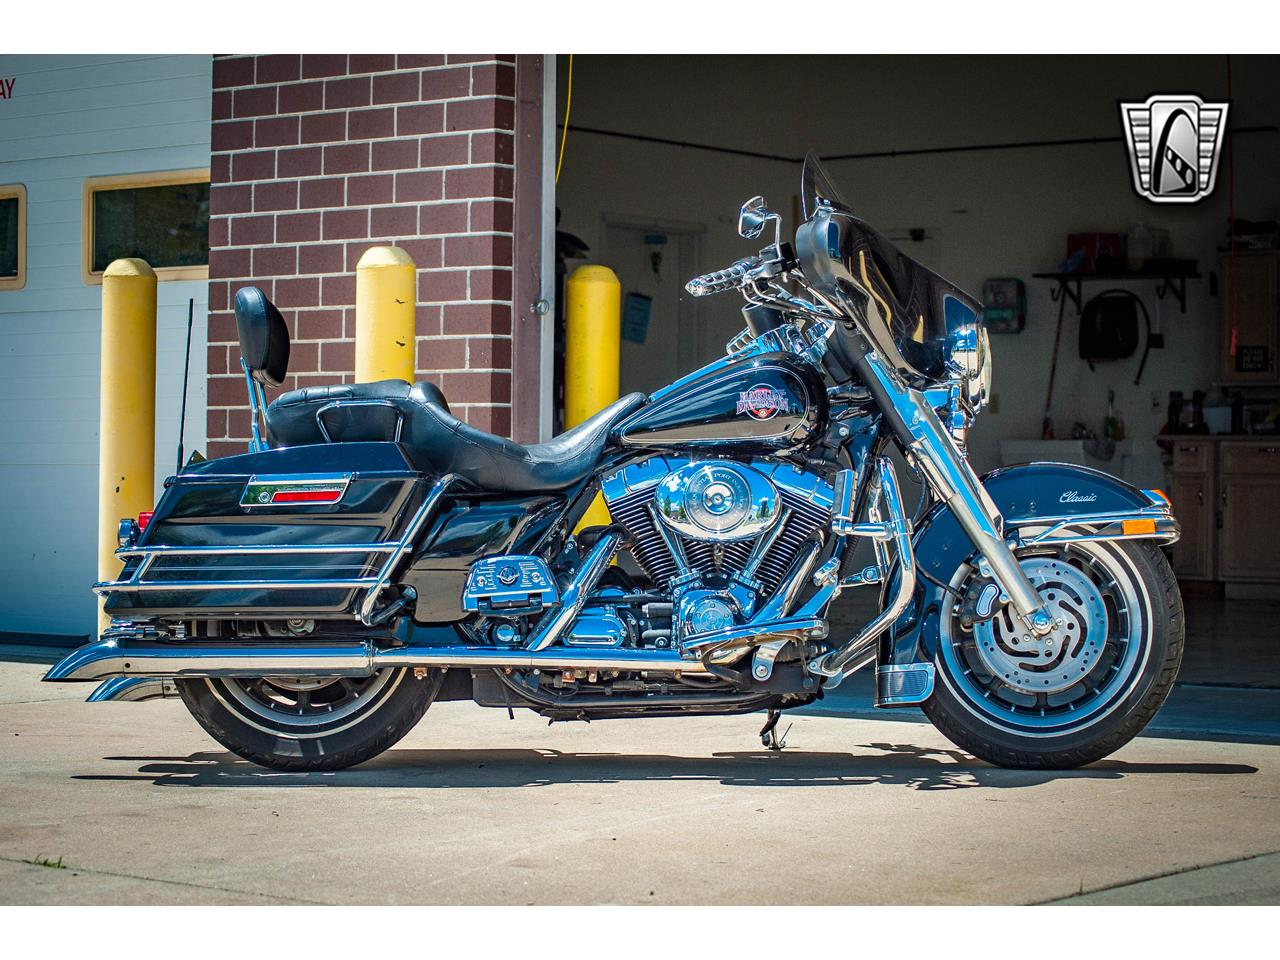 2004 Harley-Davidson Motorcycle for sale in O'Fallon, IL – photo 7